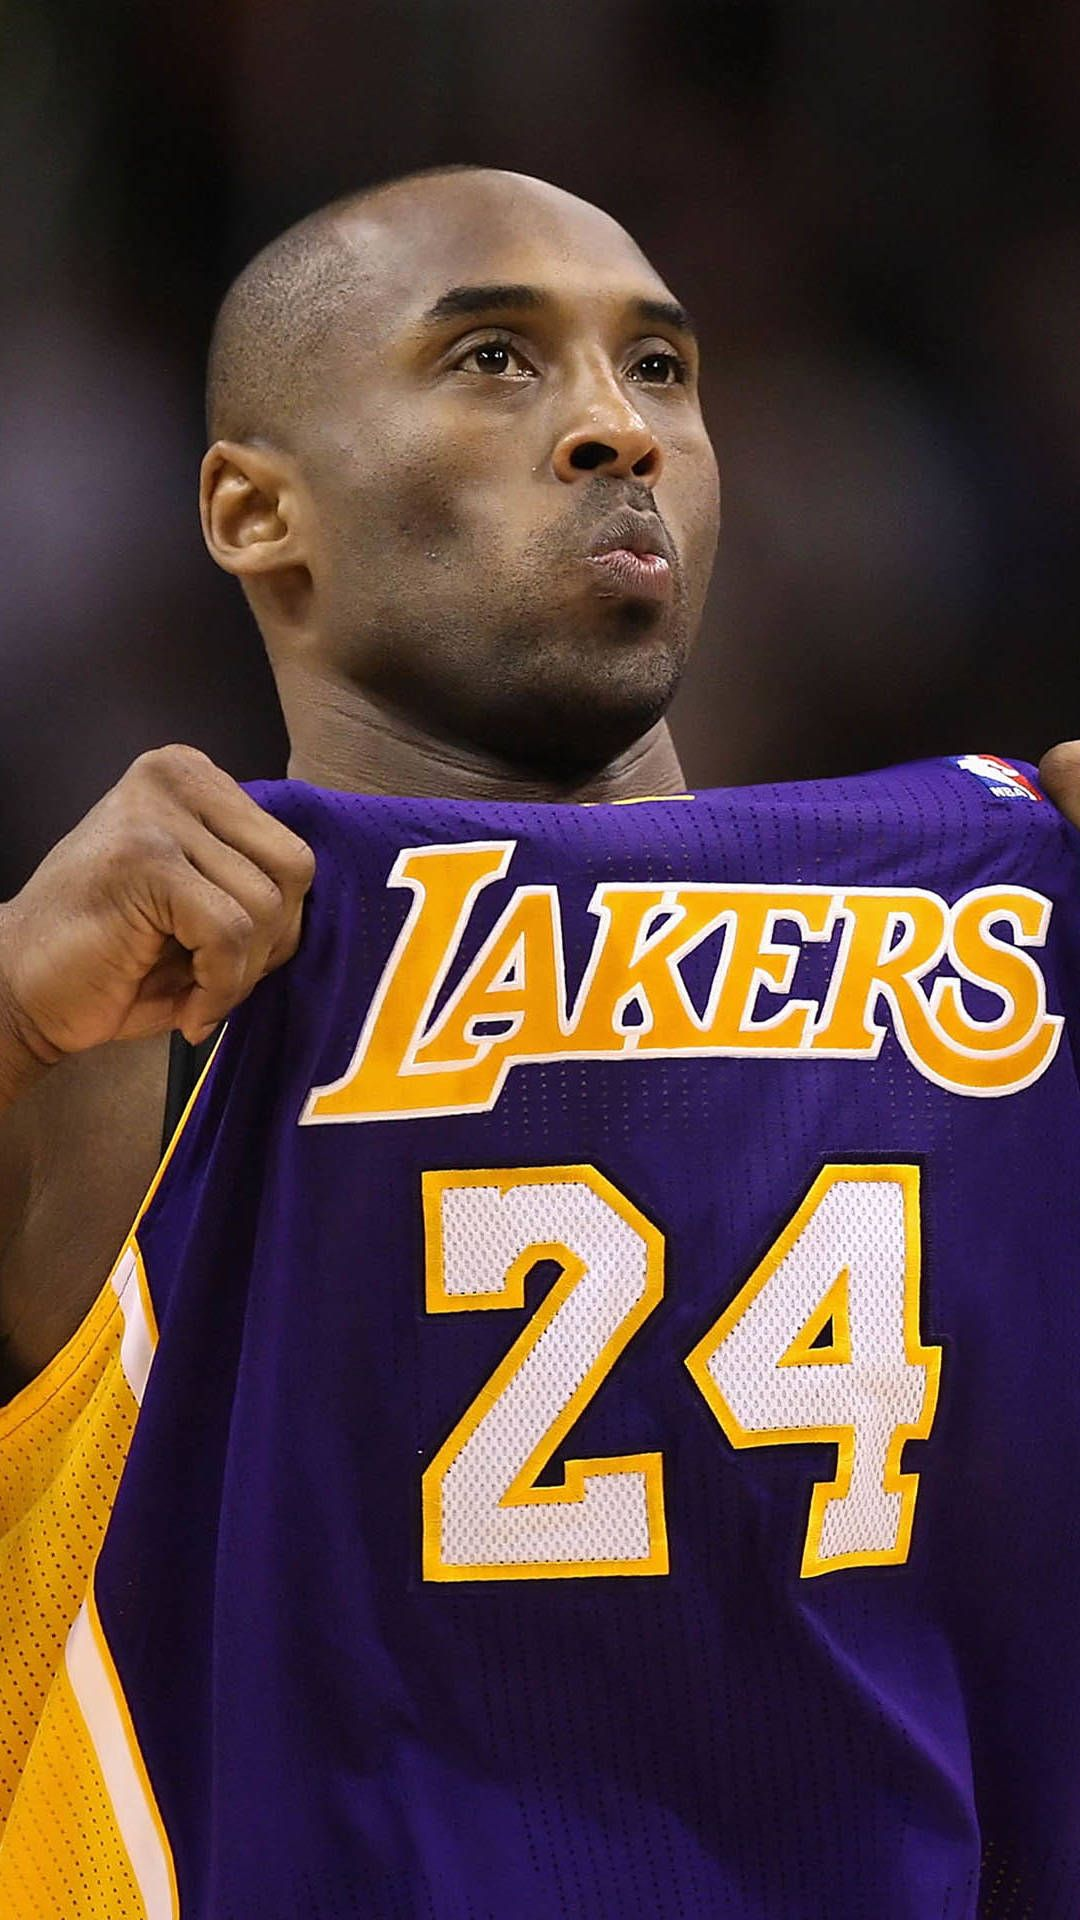 Kobe Bryant d Wallpapers wallpaper hd Kobe bryant kids